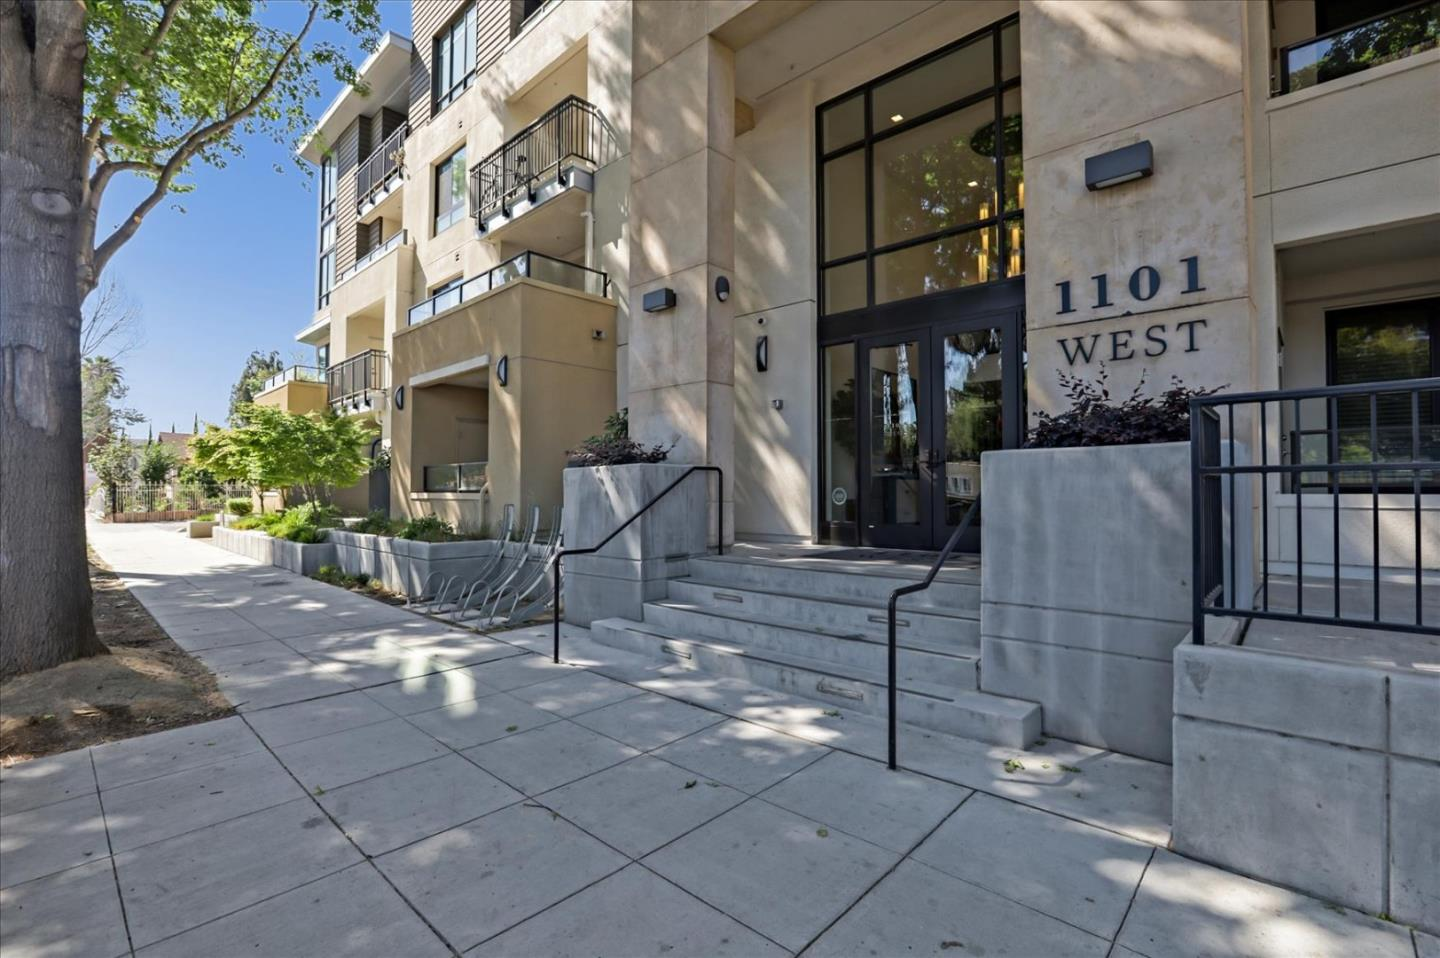 Commuter's Dream Location! Just a block from downtown Mountain View. This unit is away from El Camino Real and it's located at private quiet corner. Big windows with timeless white window shutters, abundant natural light brighten the elegant hardwood floors. Stylish kitchen features Bosch appliances, quartz countertops, European-style cabinetry, & island w/ breakfast bar. Unwind in your generous master suite showcasing soft carpet, a large walk-in closet & a tiled ensuite. Expansive and private corner patio to entertain your guests on summer days. Additionally, you'll have in-unit laundry, secured underground parking, with additional lockable storage space underground, a bike pavilion, dog run area & a lounge area w/ outdoor kitchen & fire pits. Plus, you will enjoy many shopping & dining options within walking distance & farmer's market in downtown Mountain View.  Short commute to Google, Apple, Facebook & major employers. Come call this adobe your own before someone else does!